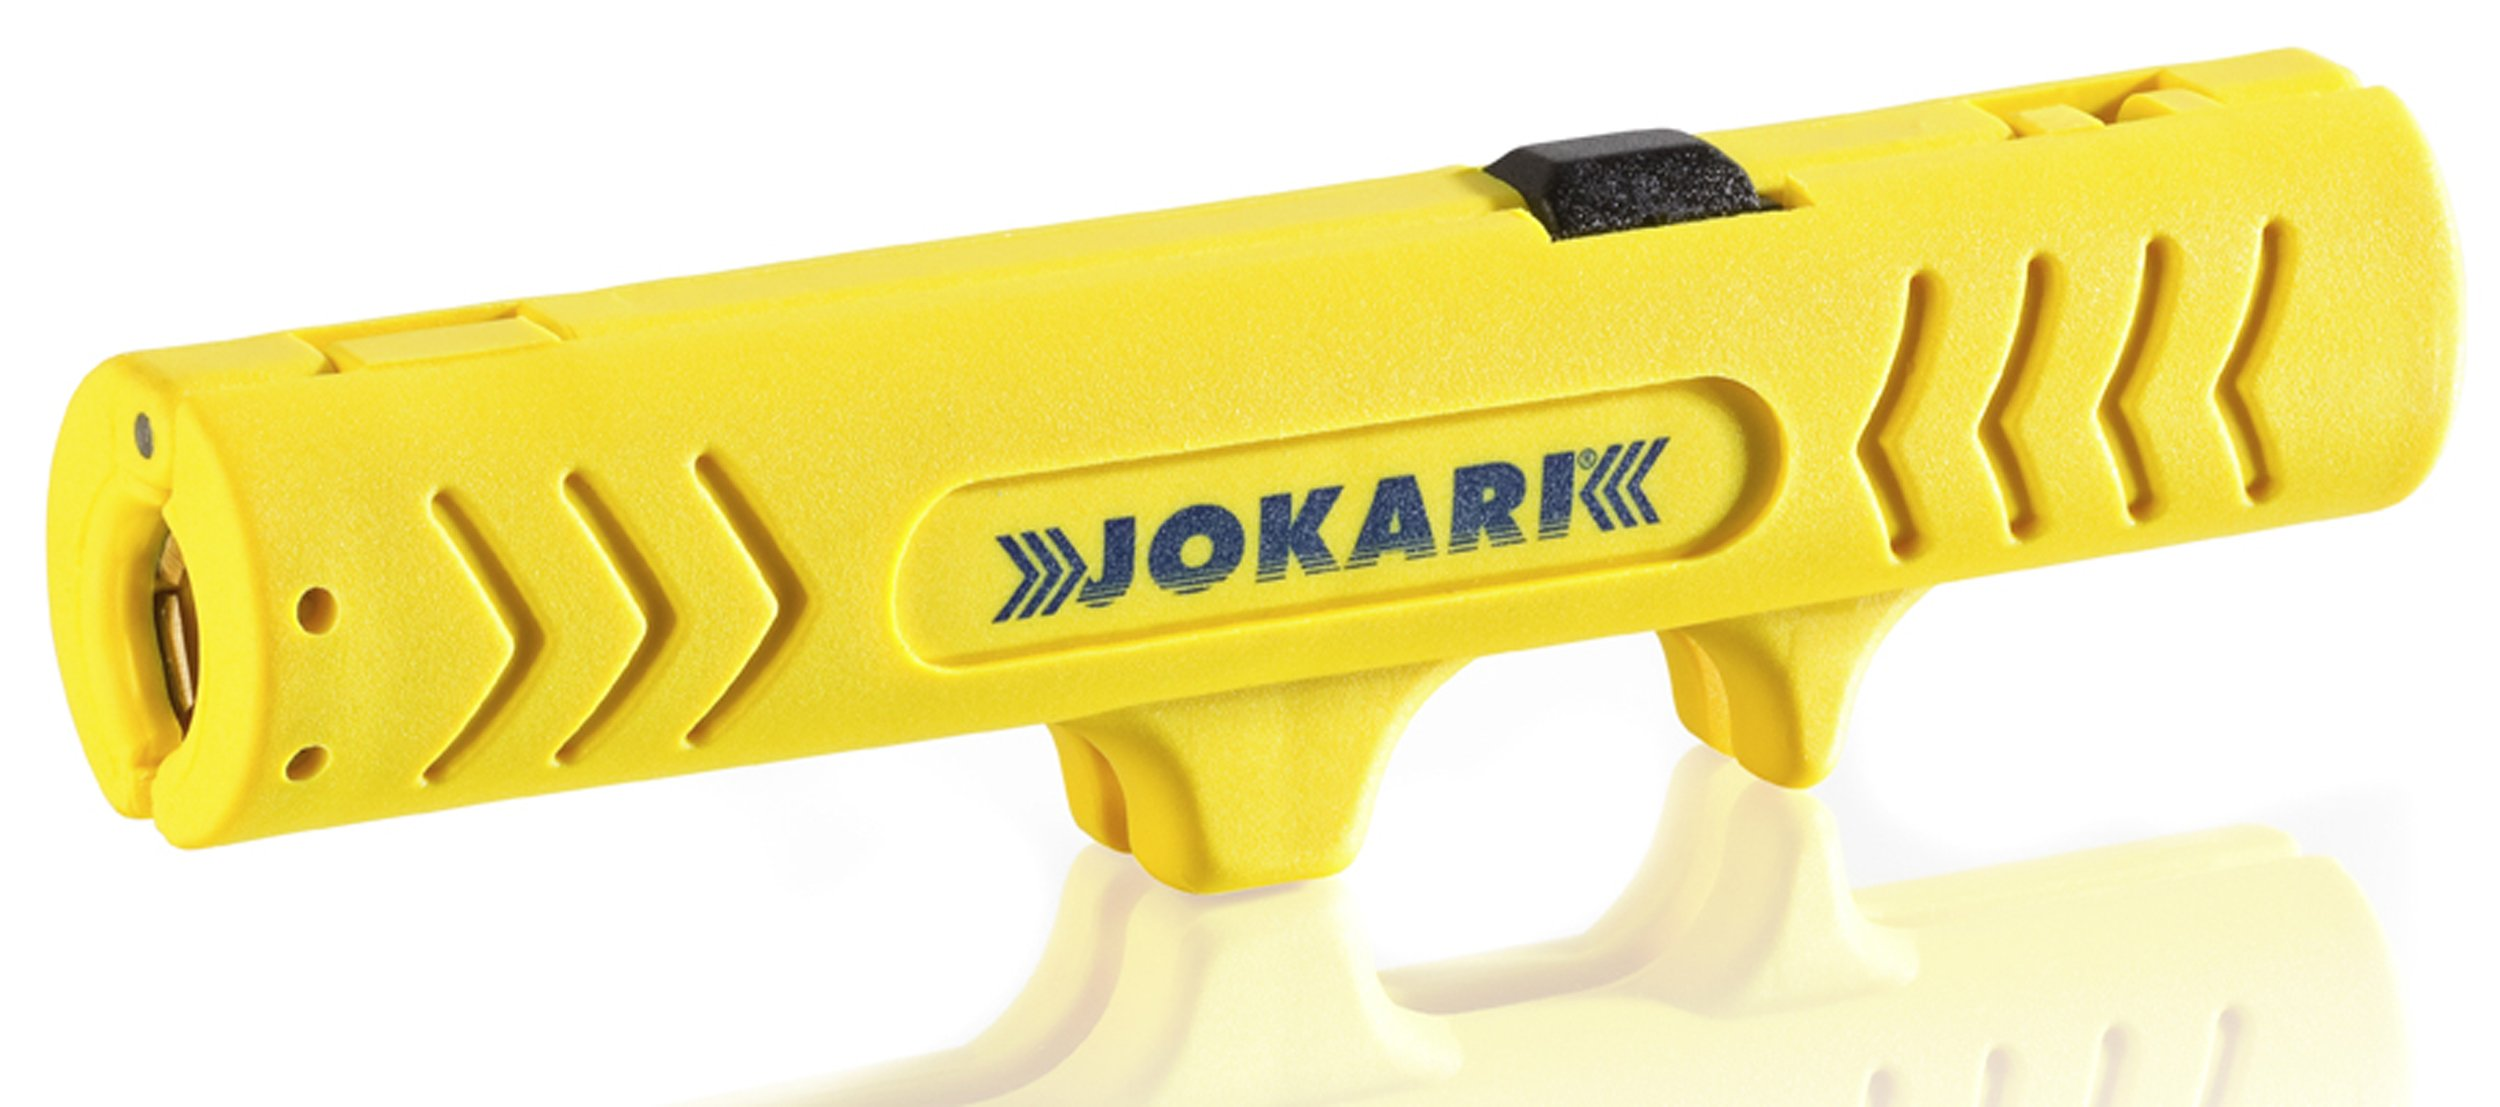 Jokari 30120 Universal Stripper for Quick And Easy Stripping, No.12, 12.4cm L x 3.5cm W x 2.5cm H